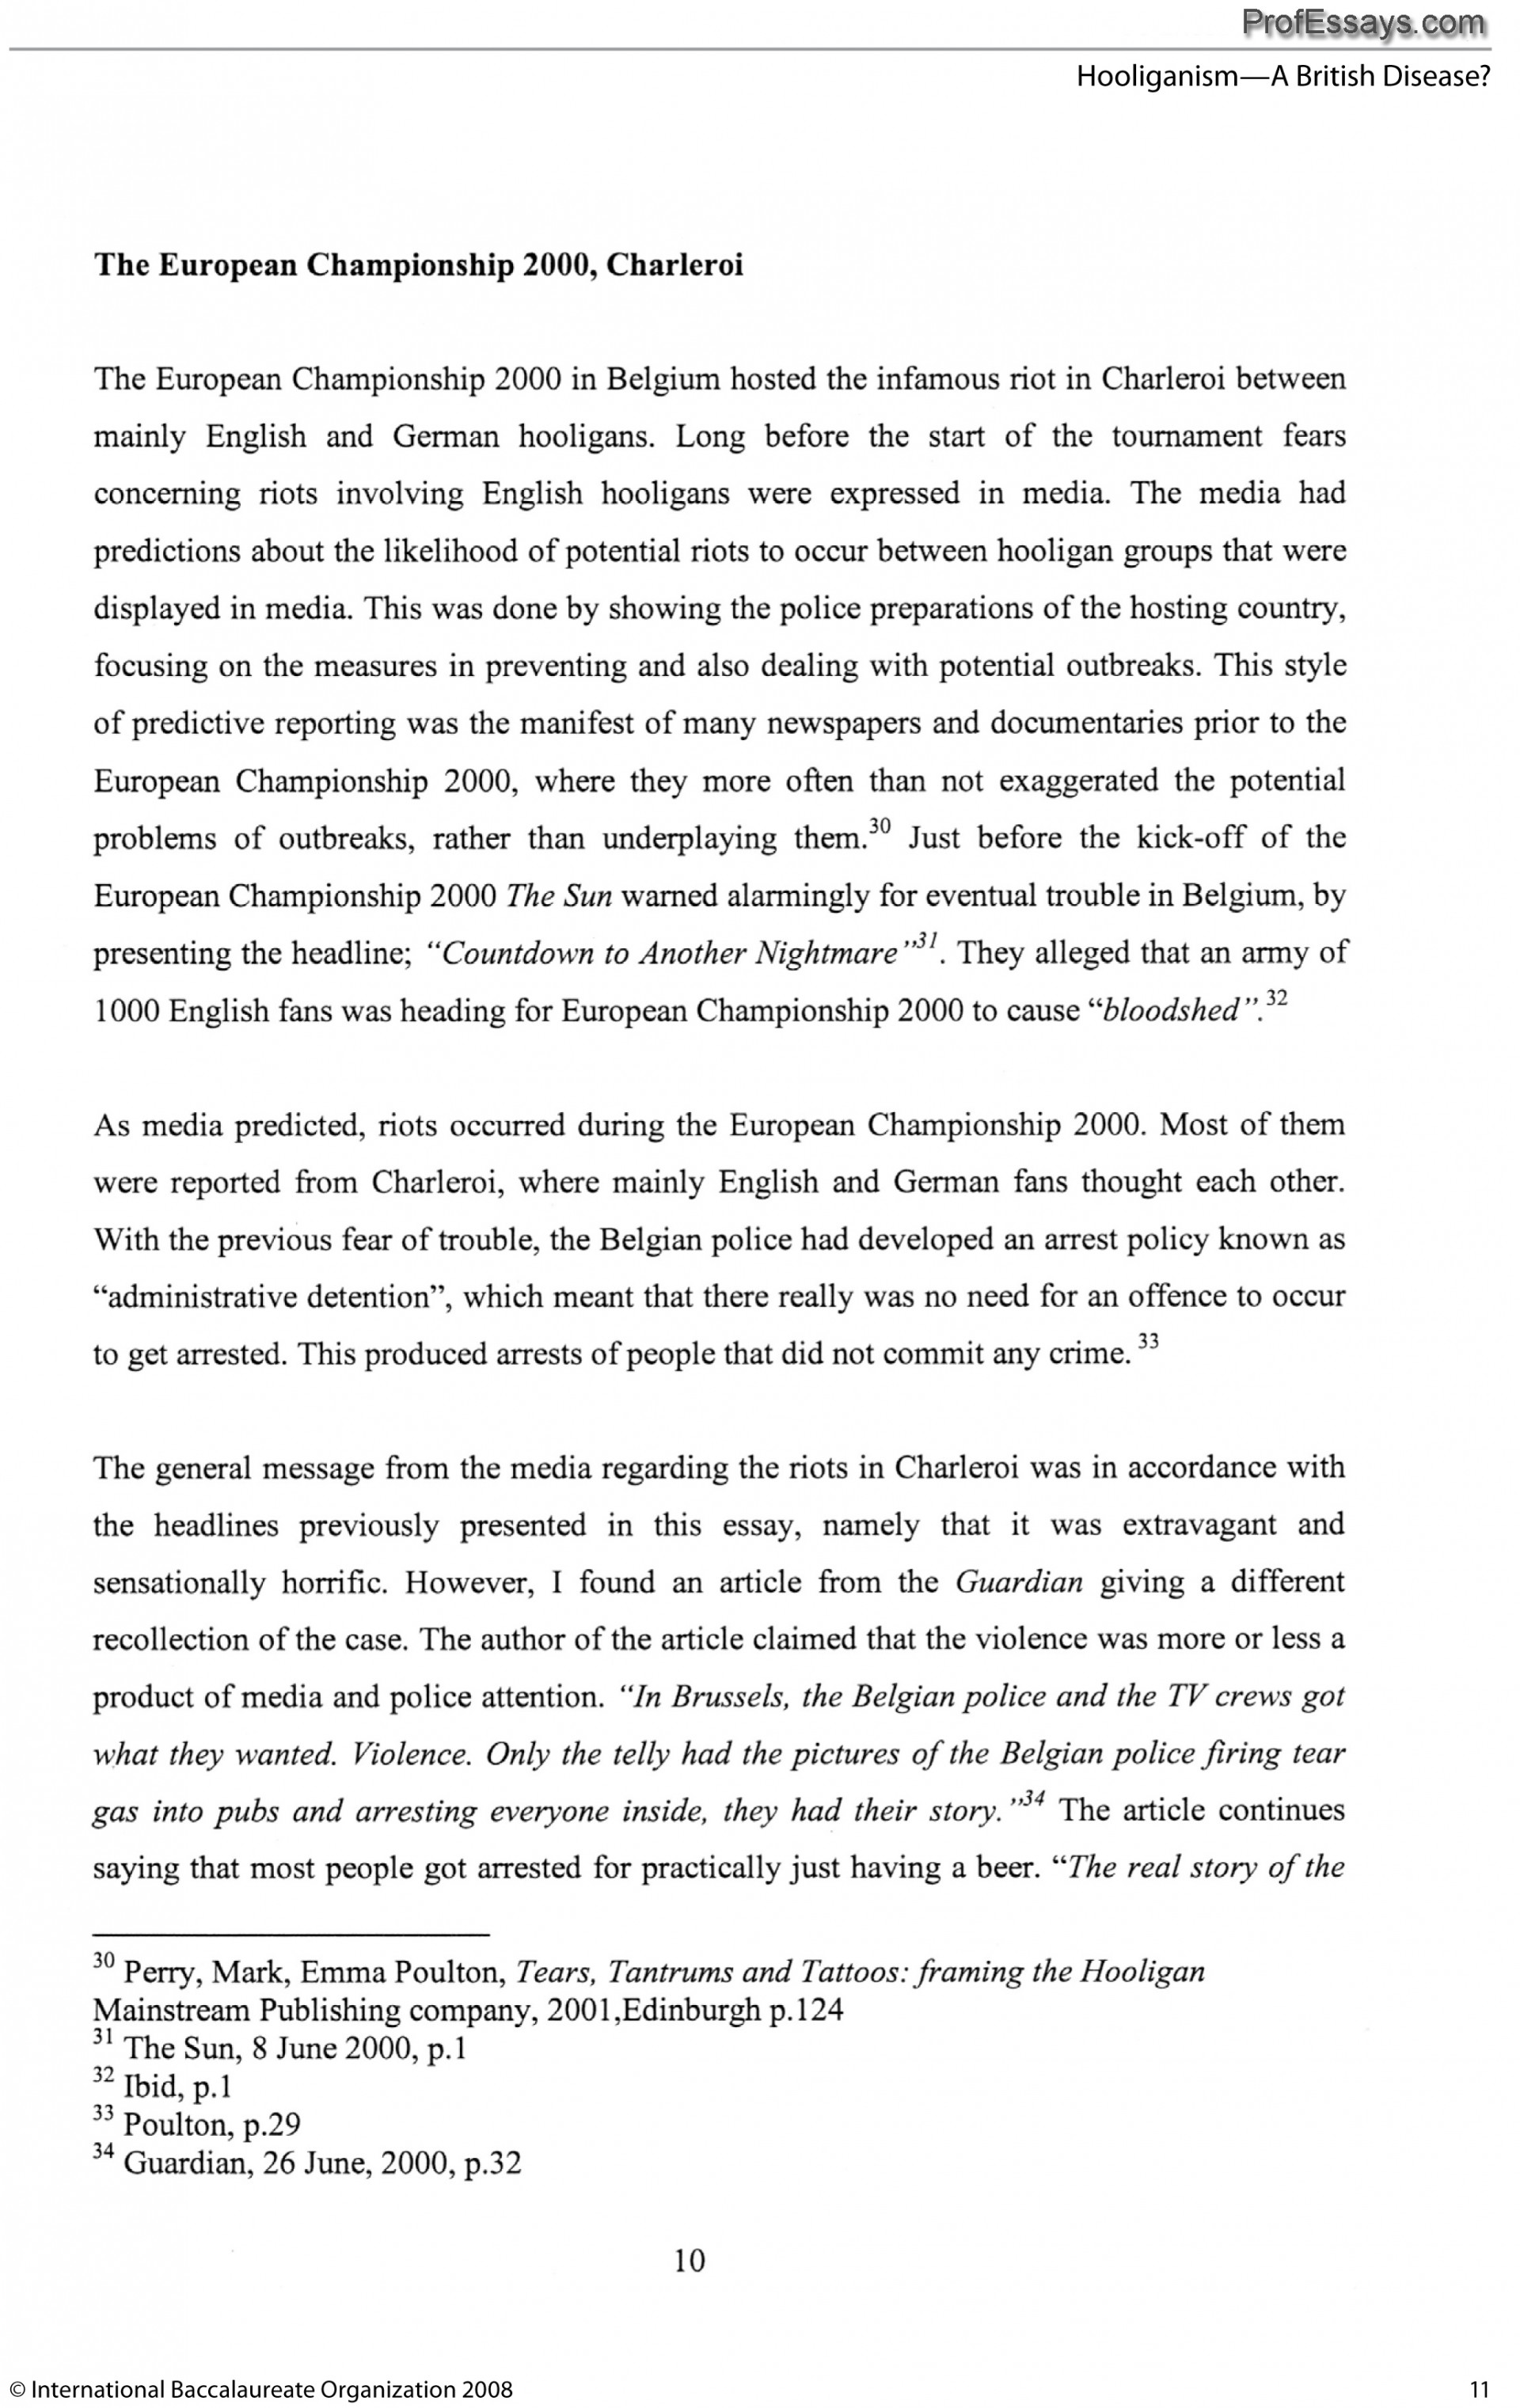 010 Essay Example Free Compare And Contrast Examples Ib Extended Singular Comparison Pdf 1920